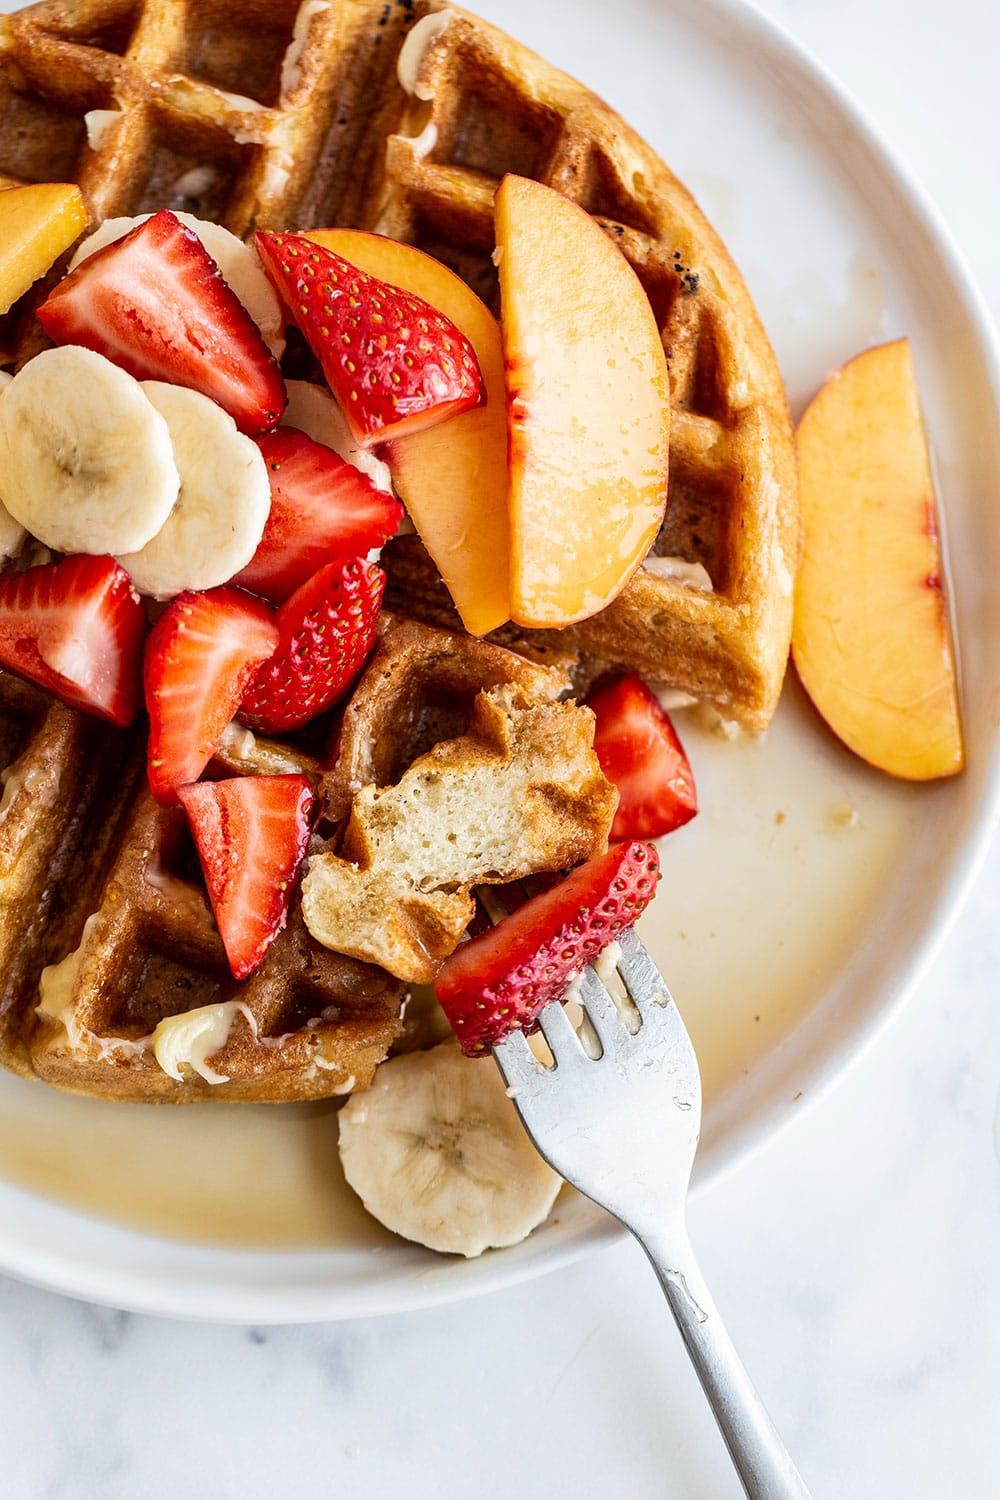 Waffle recipe on a plate with maple syrup and fresh fruit